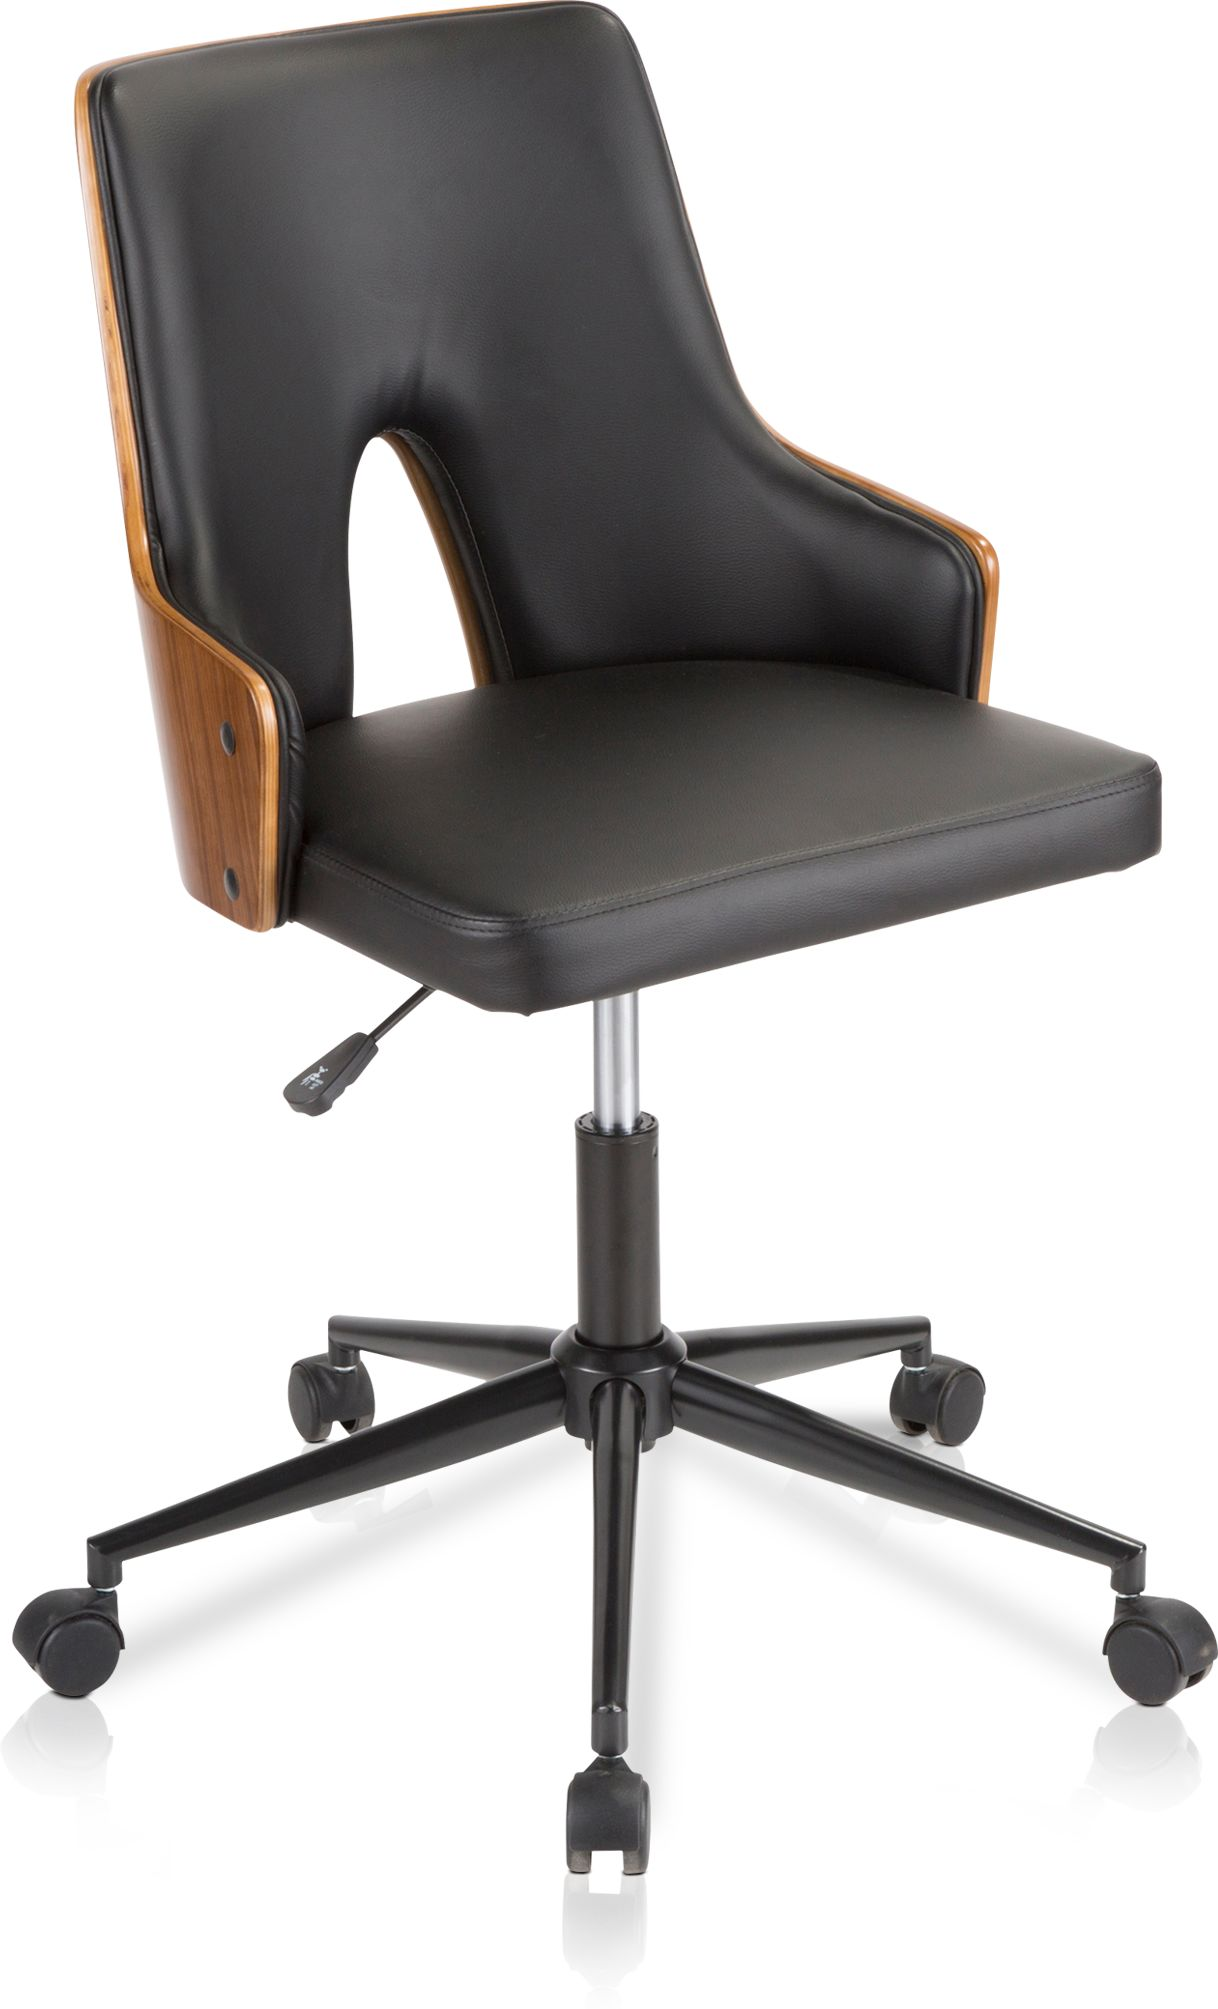 Home Office Furniture - Archie Office Chair